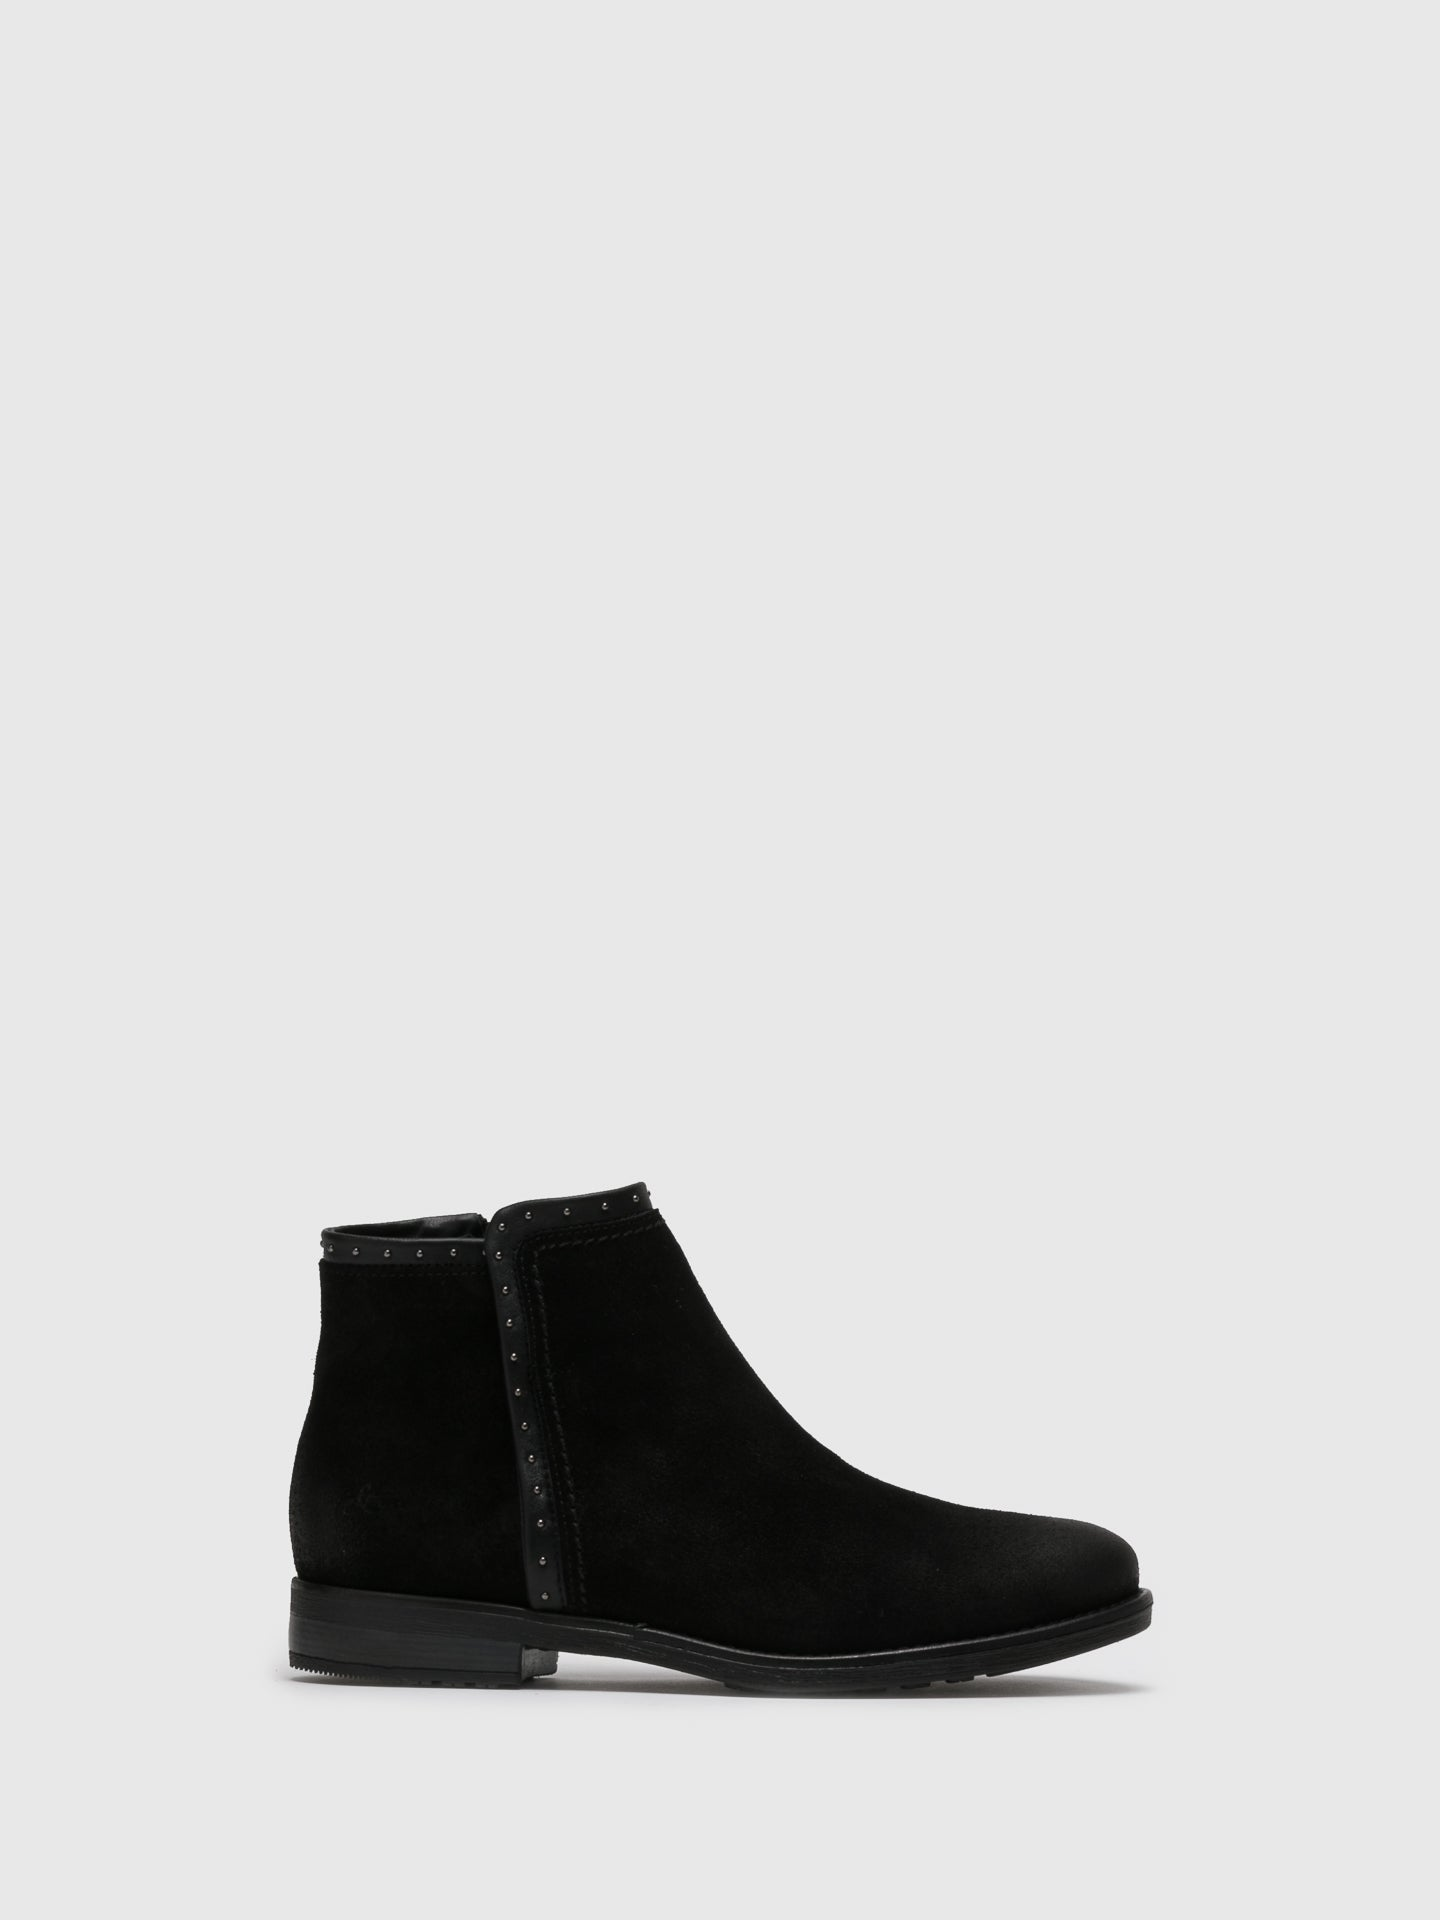 Bos&Co Black Suede Zip Up Ankle Boots